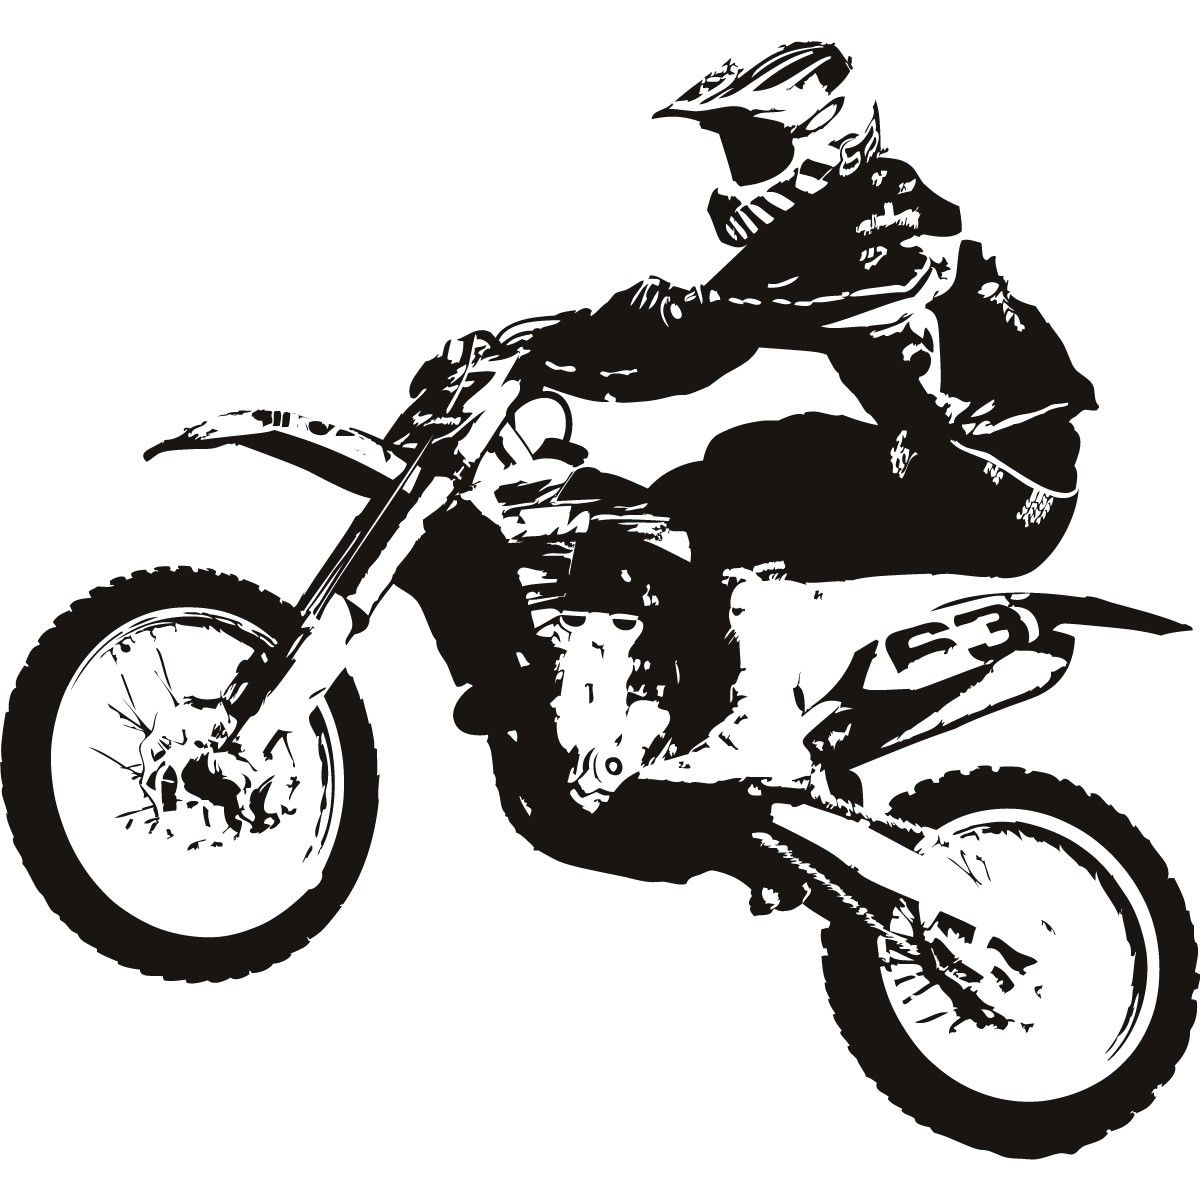 Mx clipart graphic freeuse stock Free download Motocross Bike Clipart for your creation. | Motor ... graphic freeuse stock